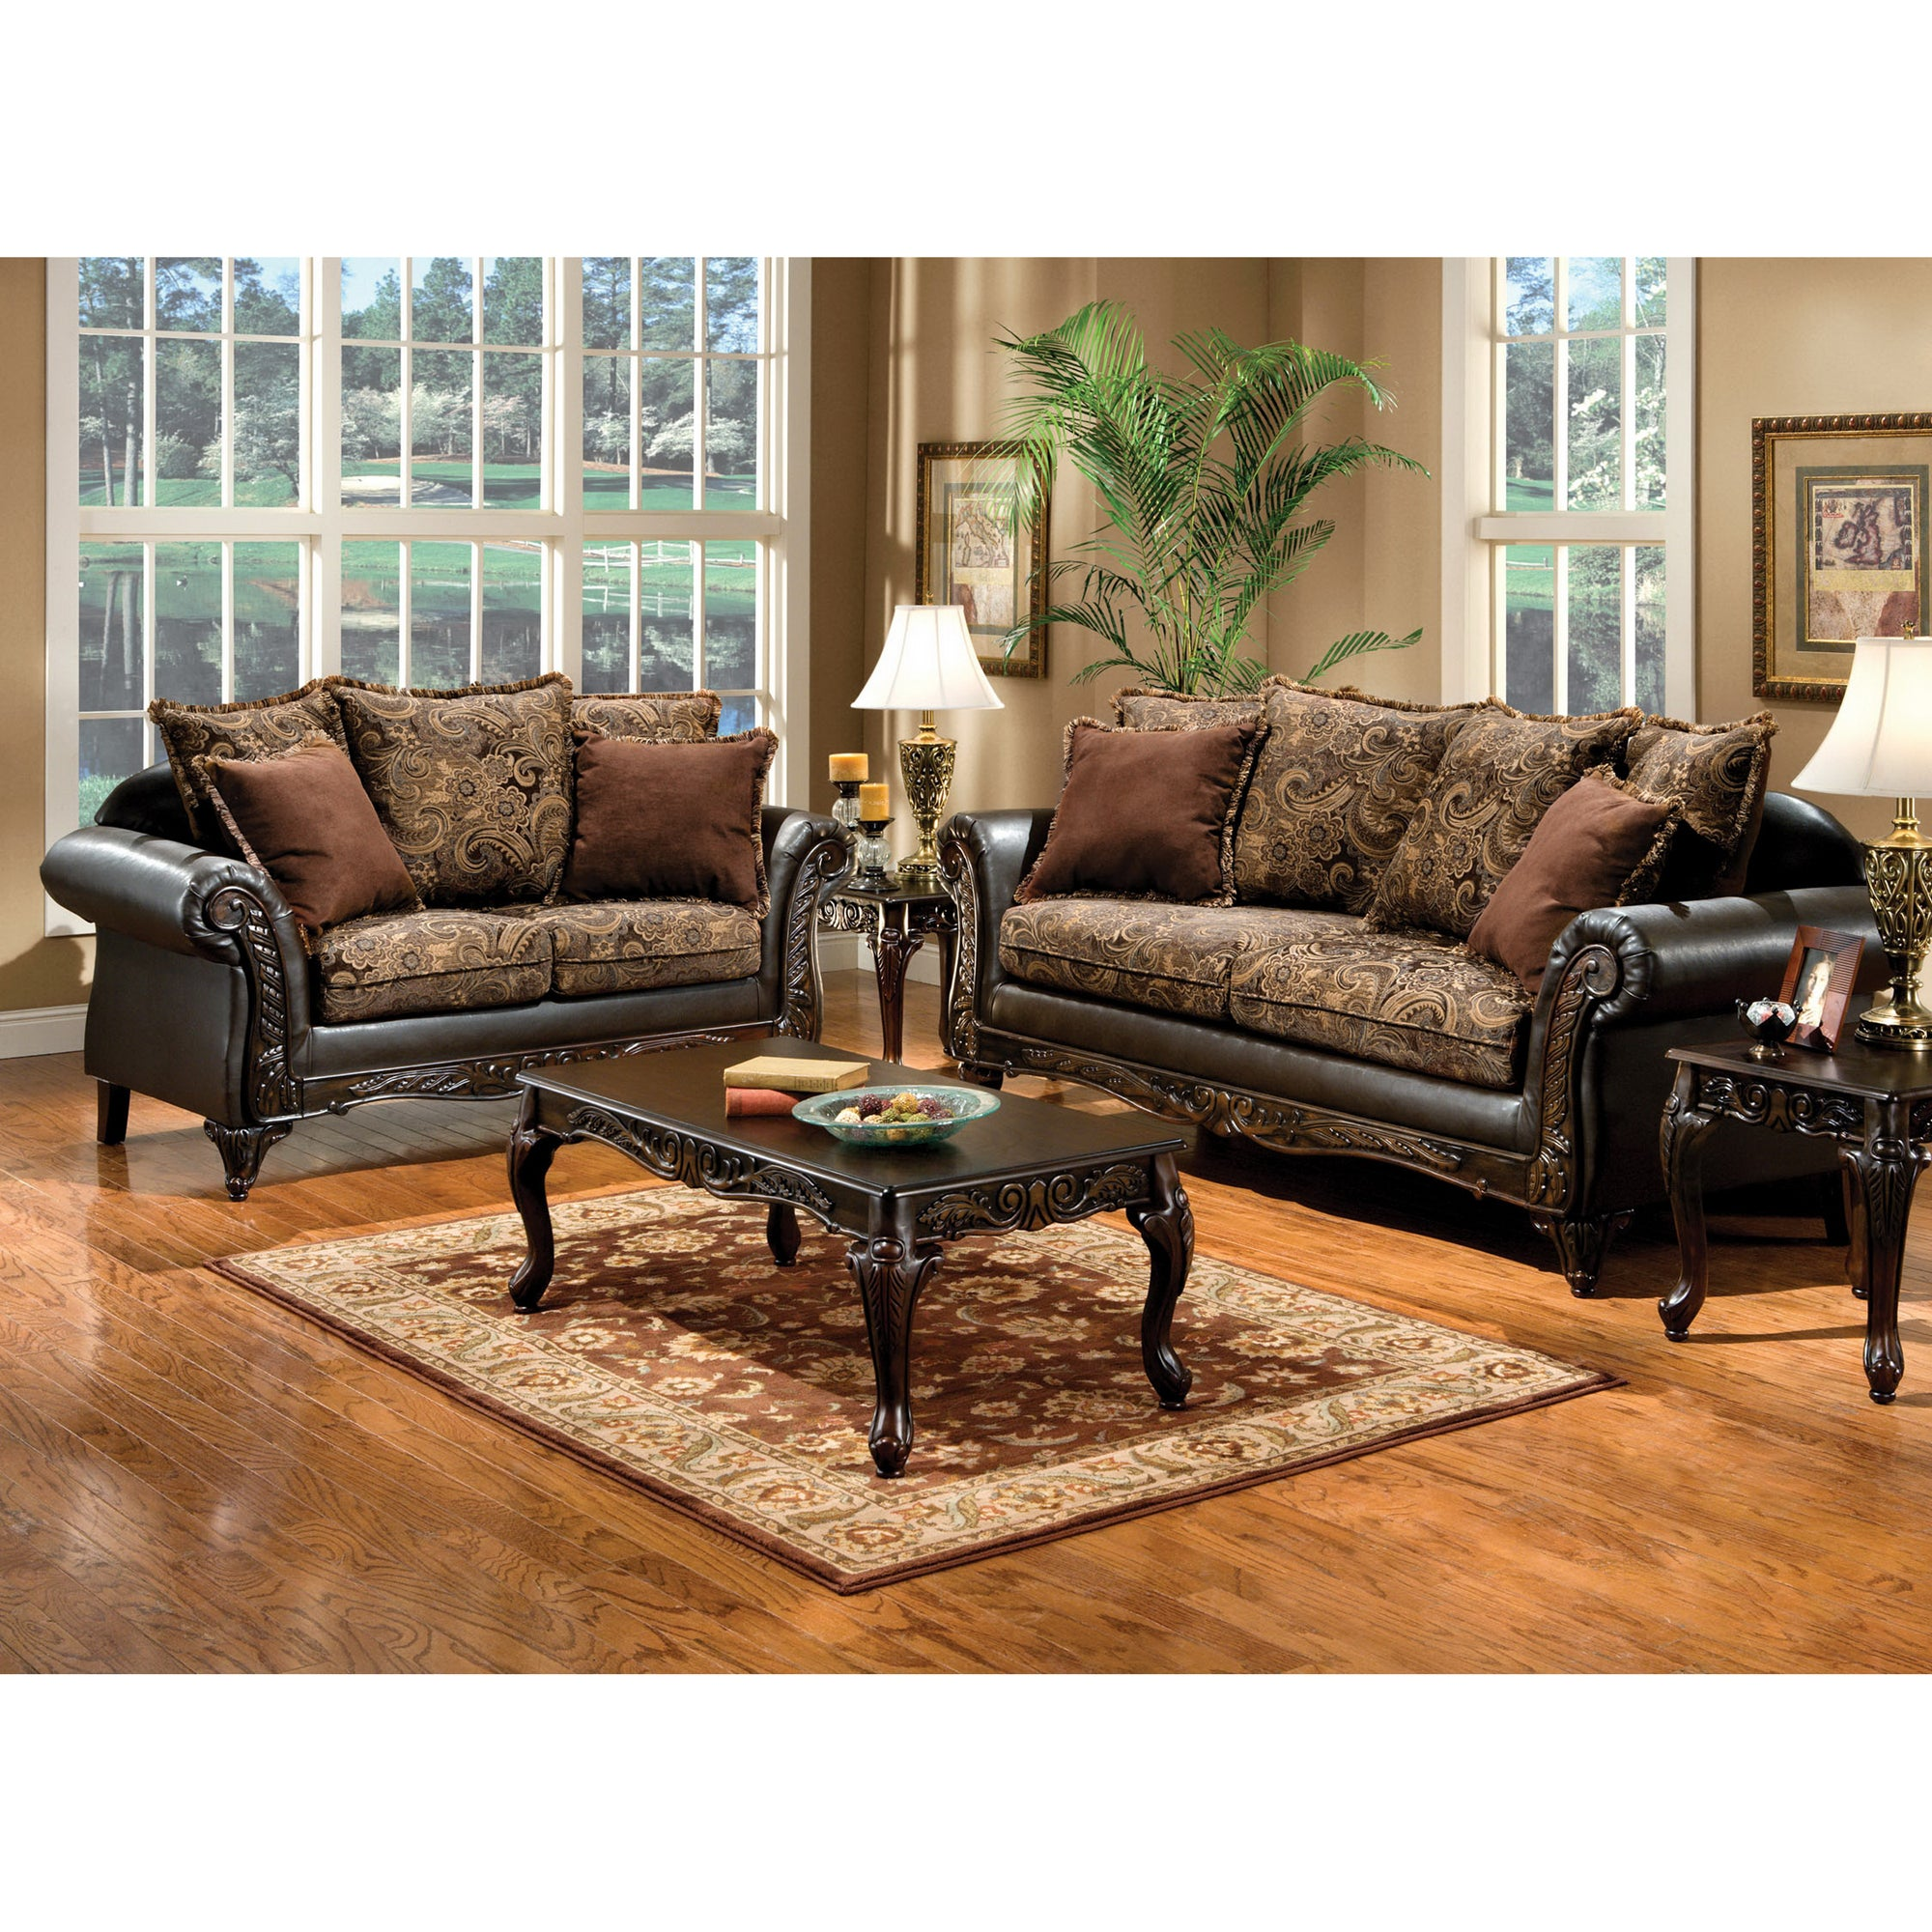 Furniture of america ruthy traditional dark brown floral - Black and brown living room furniture ...